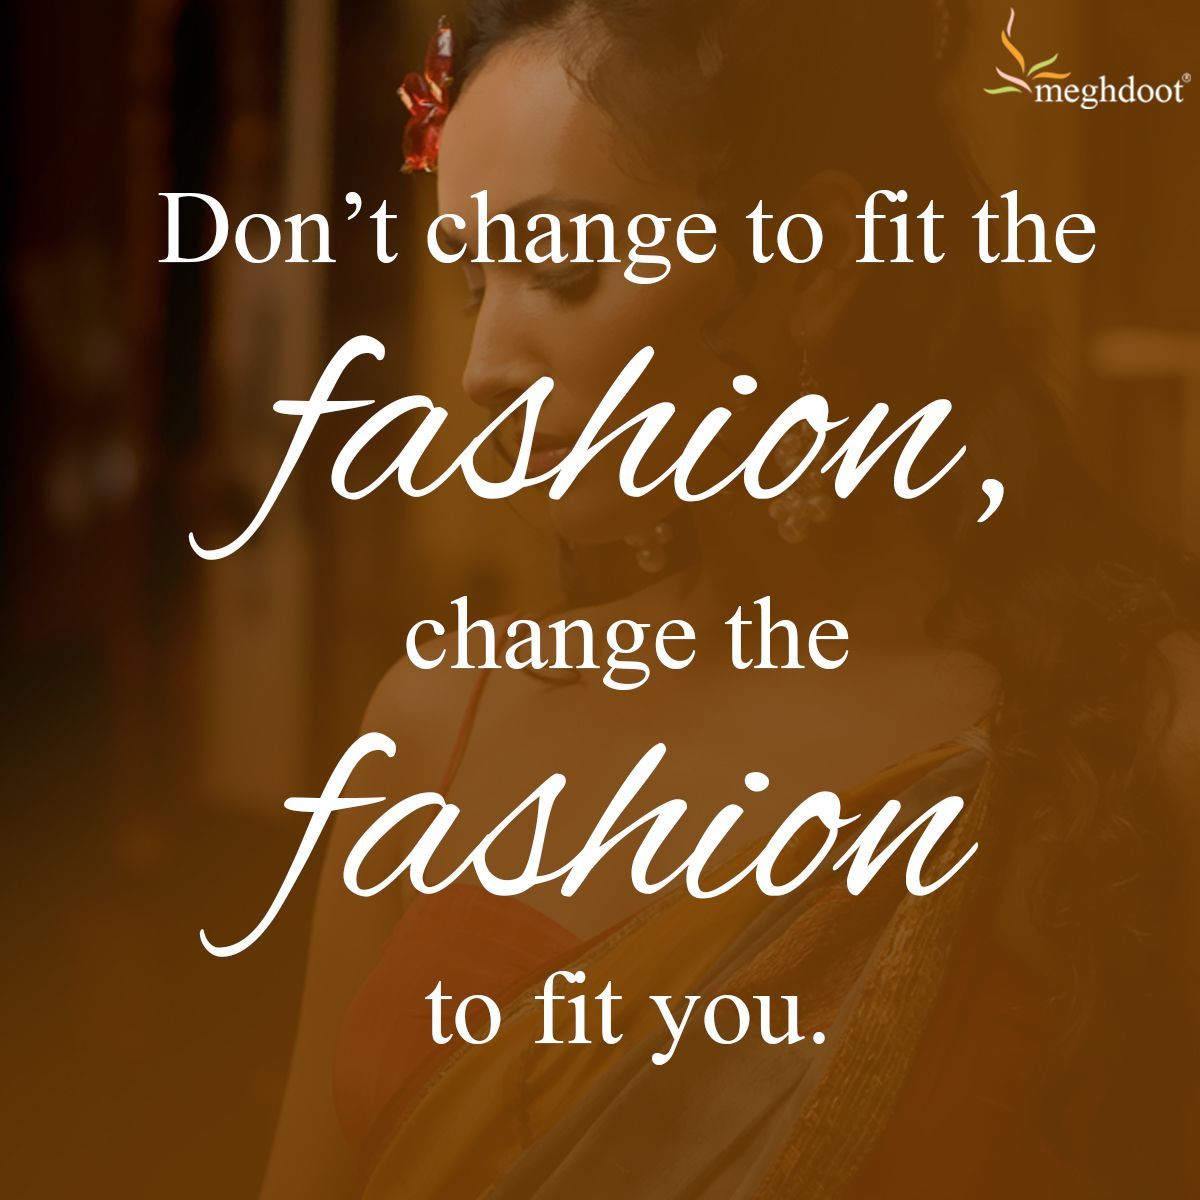 Saree Quotes: Thought Of The Day. #TOTD #Attitude #meghdoot #saree